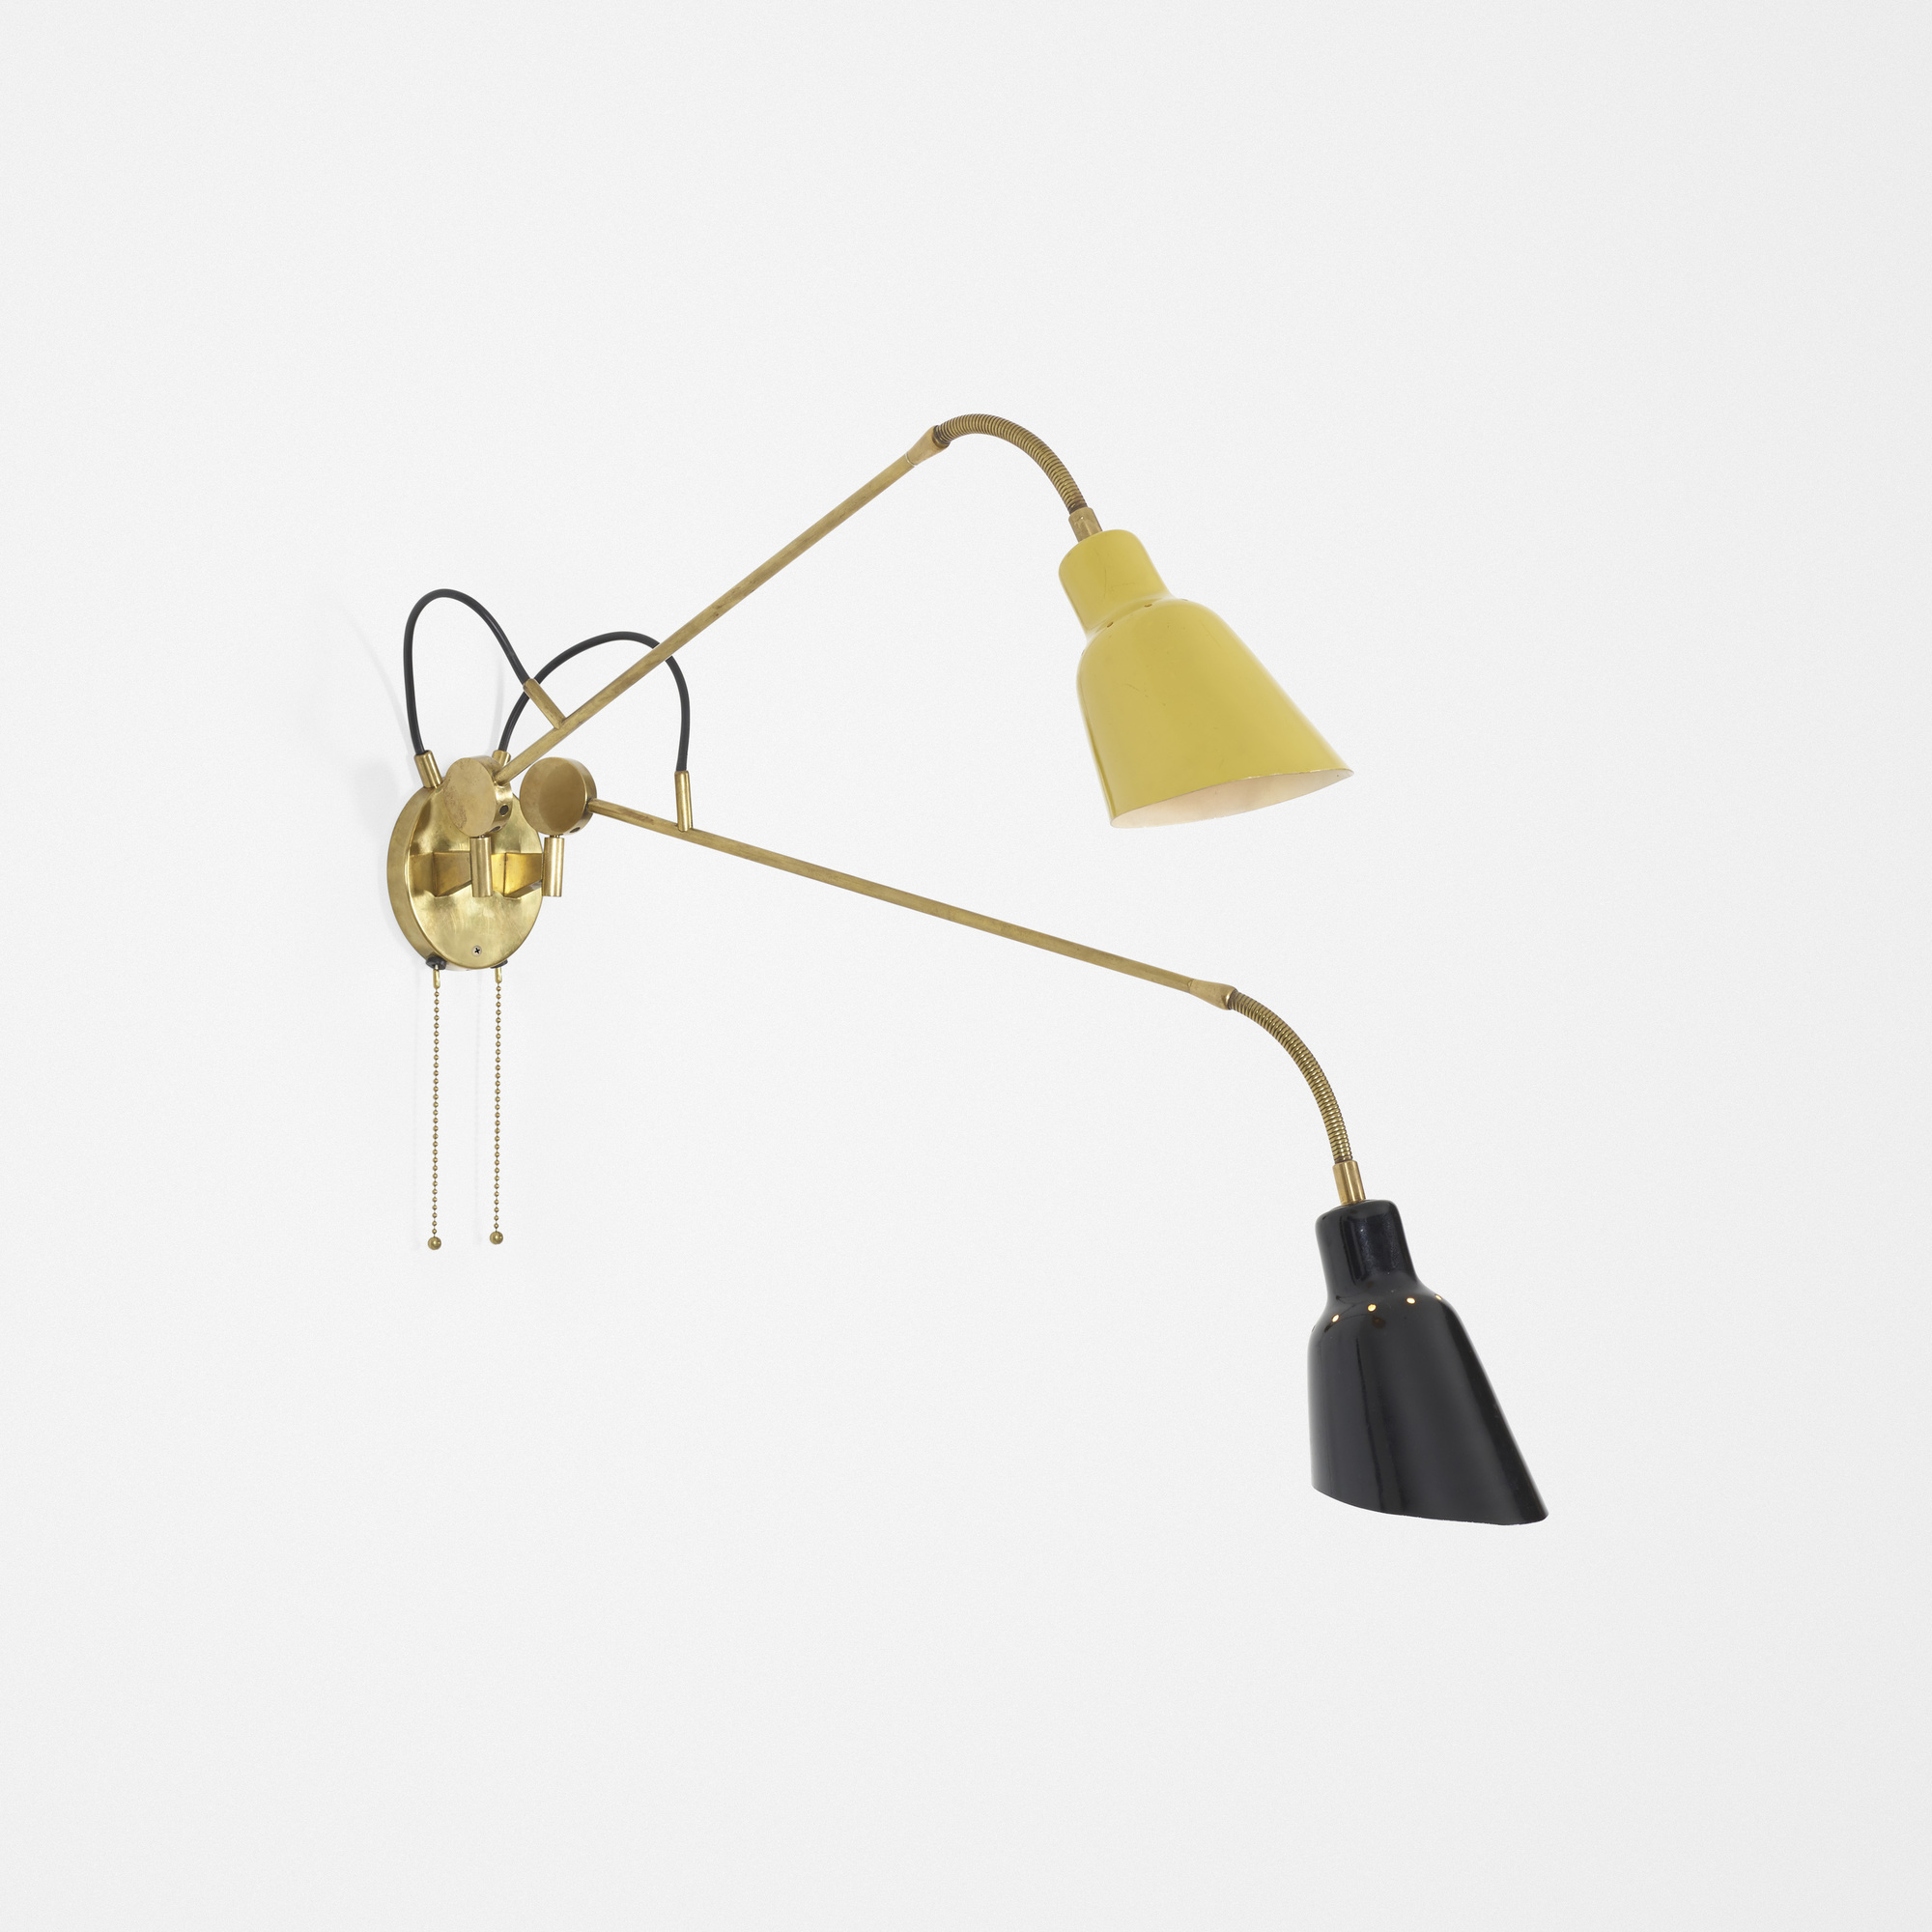 35: Angelo Lelii / Rare articulated wall lamp (1 of 3)